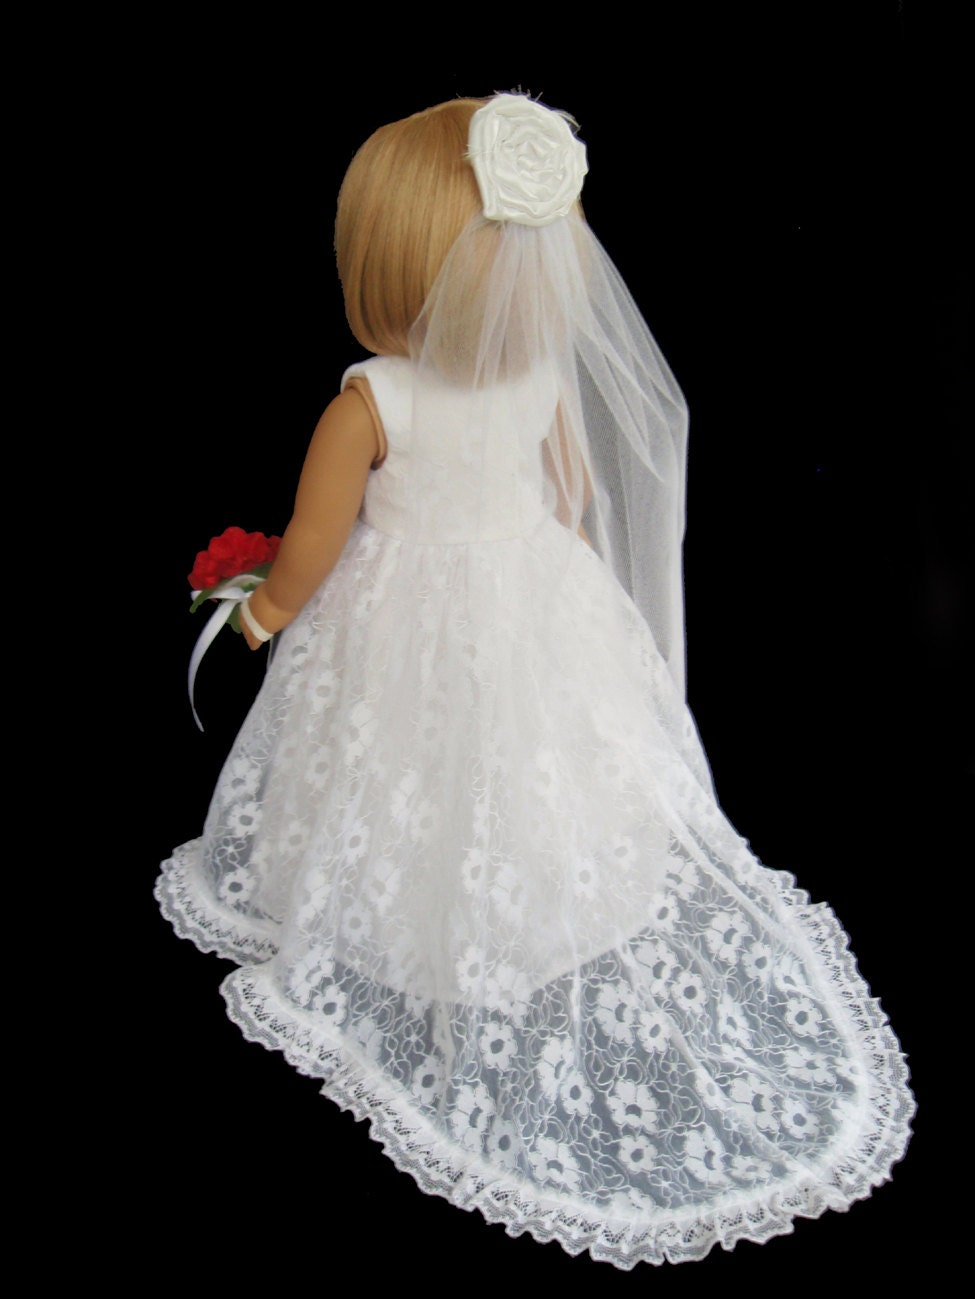 American girl doll clothes traditional wedding gown dress for American girl wedding dress